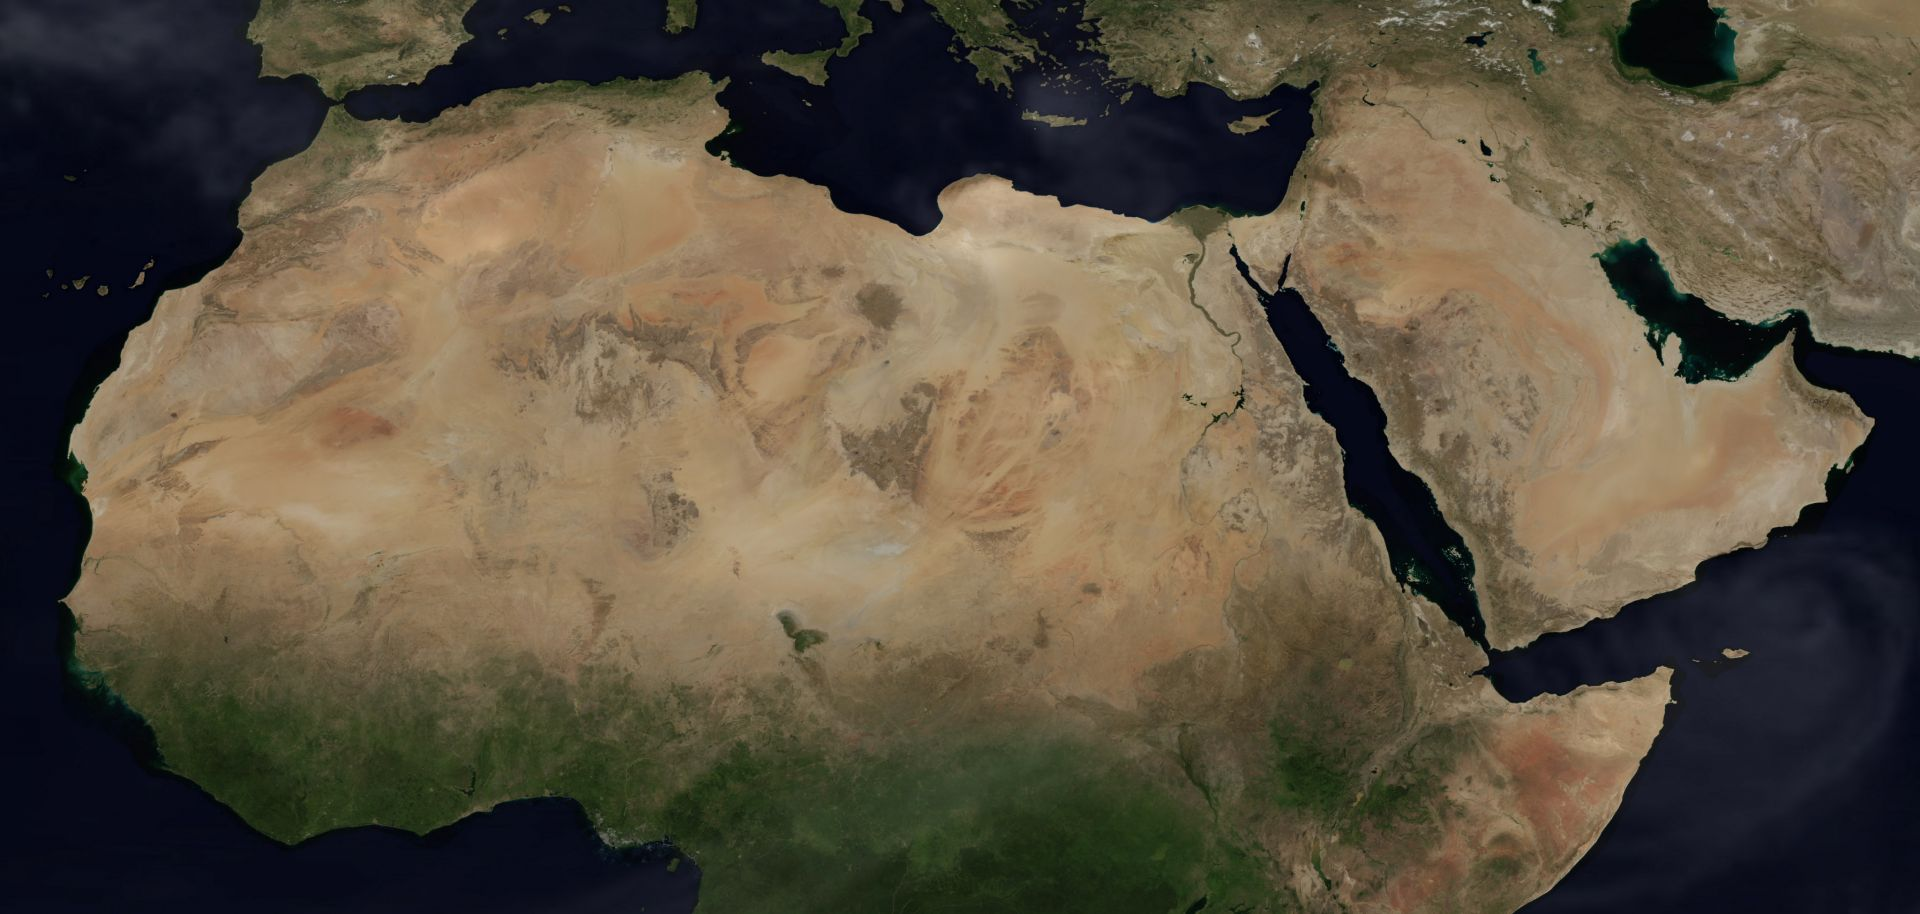 A satellite image of theMiddle East and North Africa.